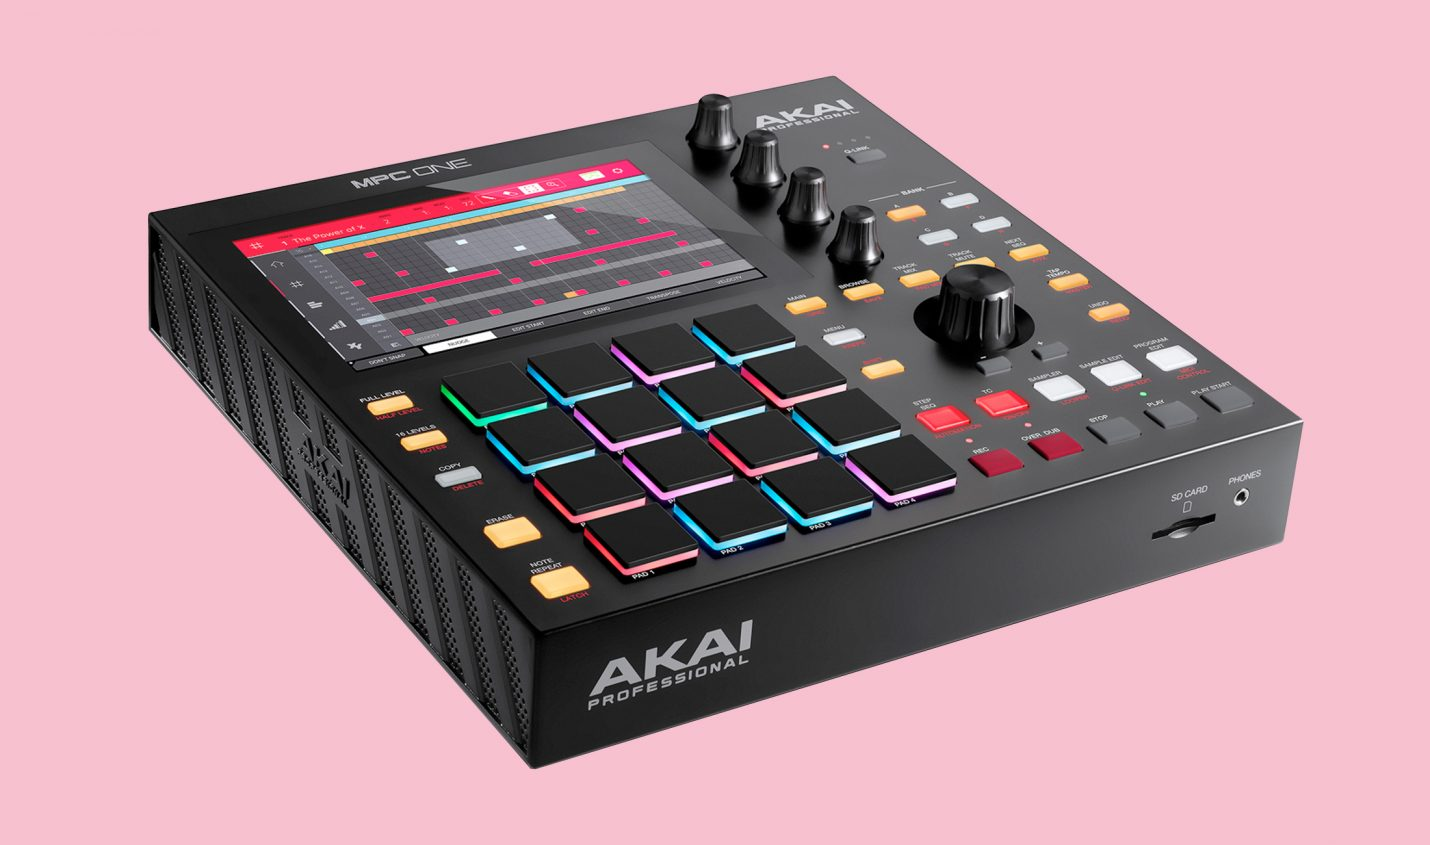 Akai Professional zeigt MPC One - DJ LAB